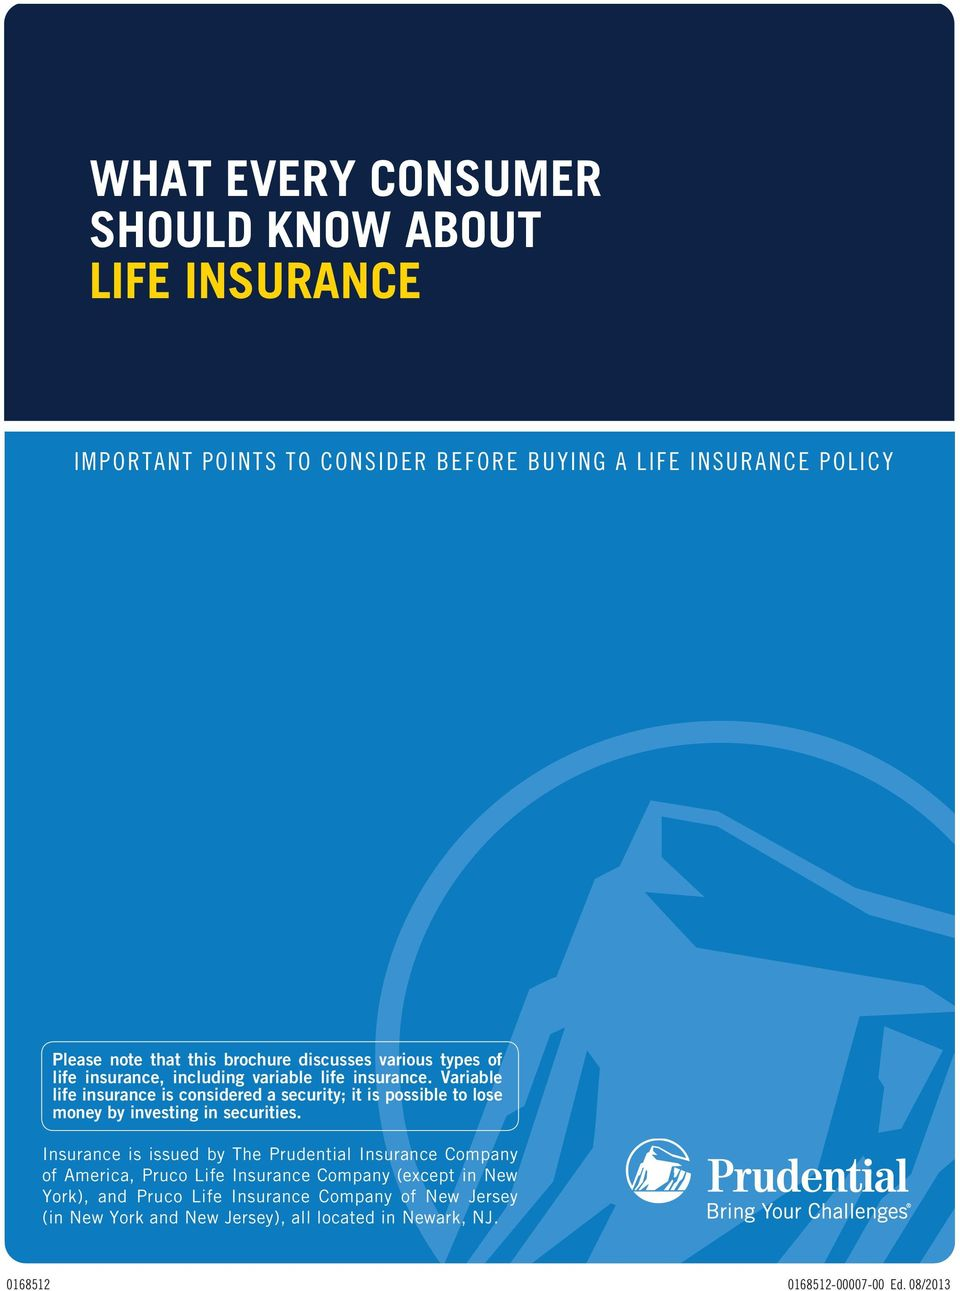 WHAT EVERY CONSUMER SHOULD KNOW ABOUT LIFE INSURANCE - PDF